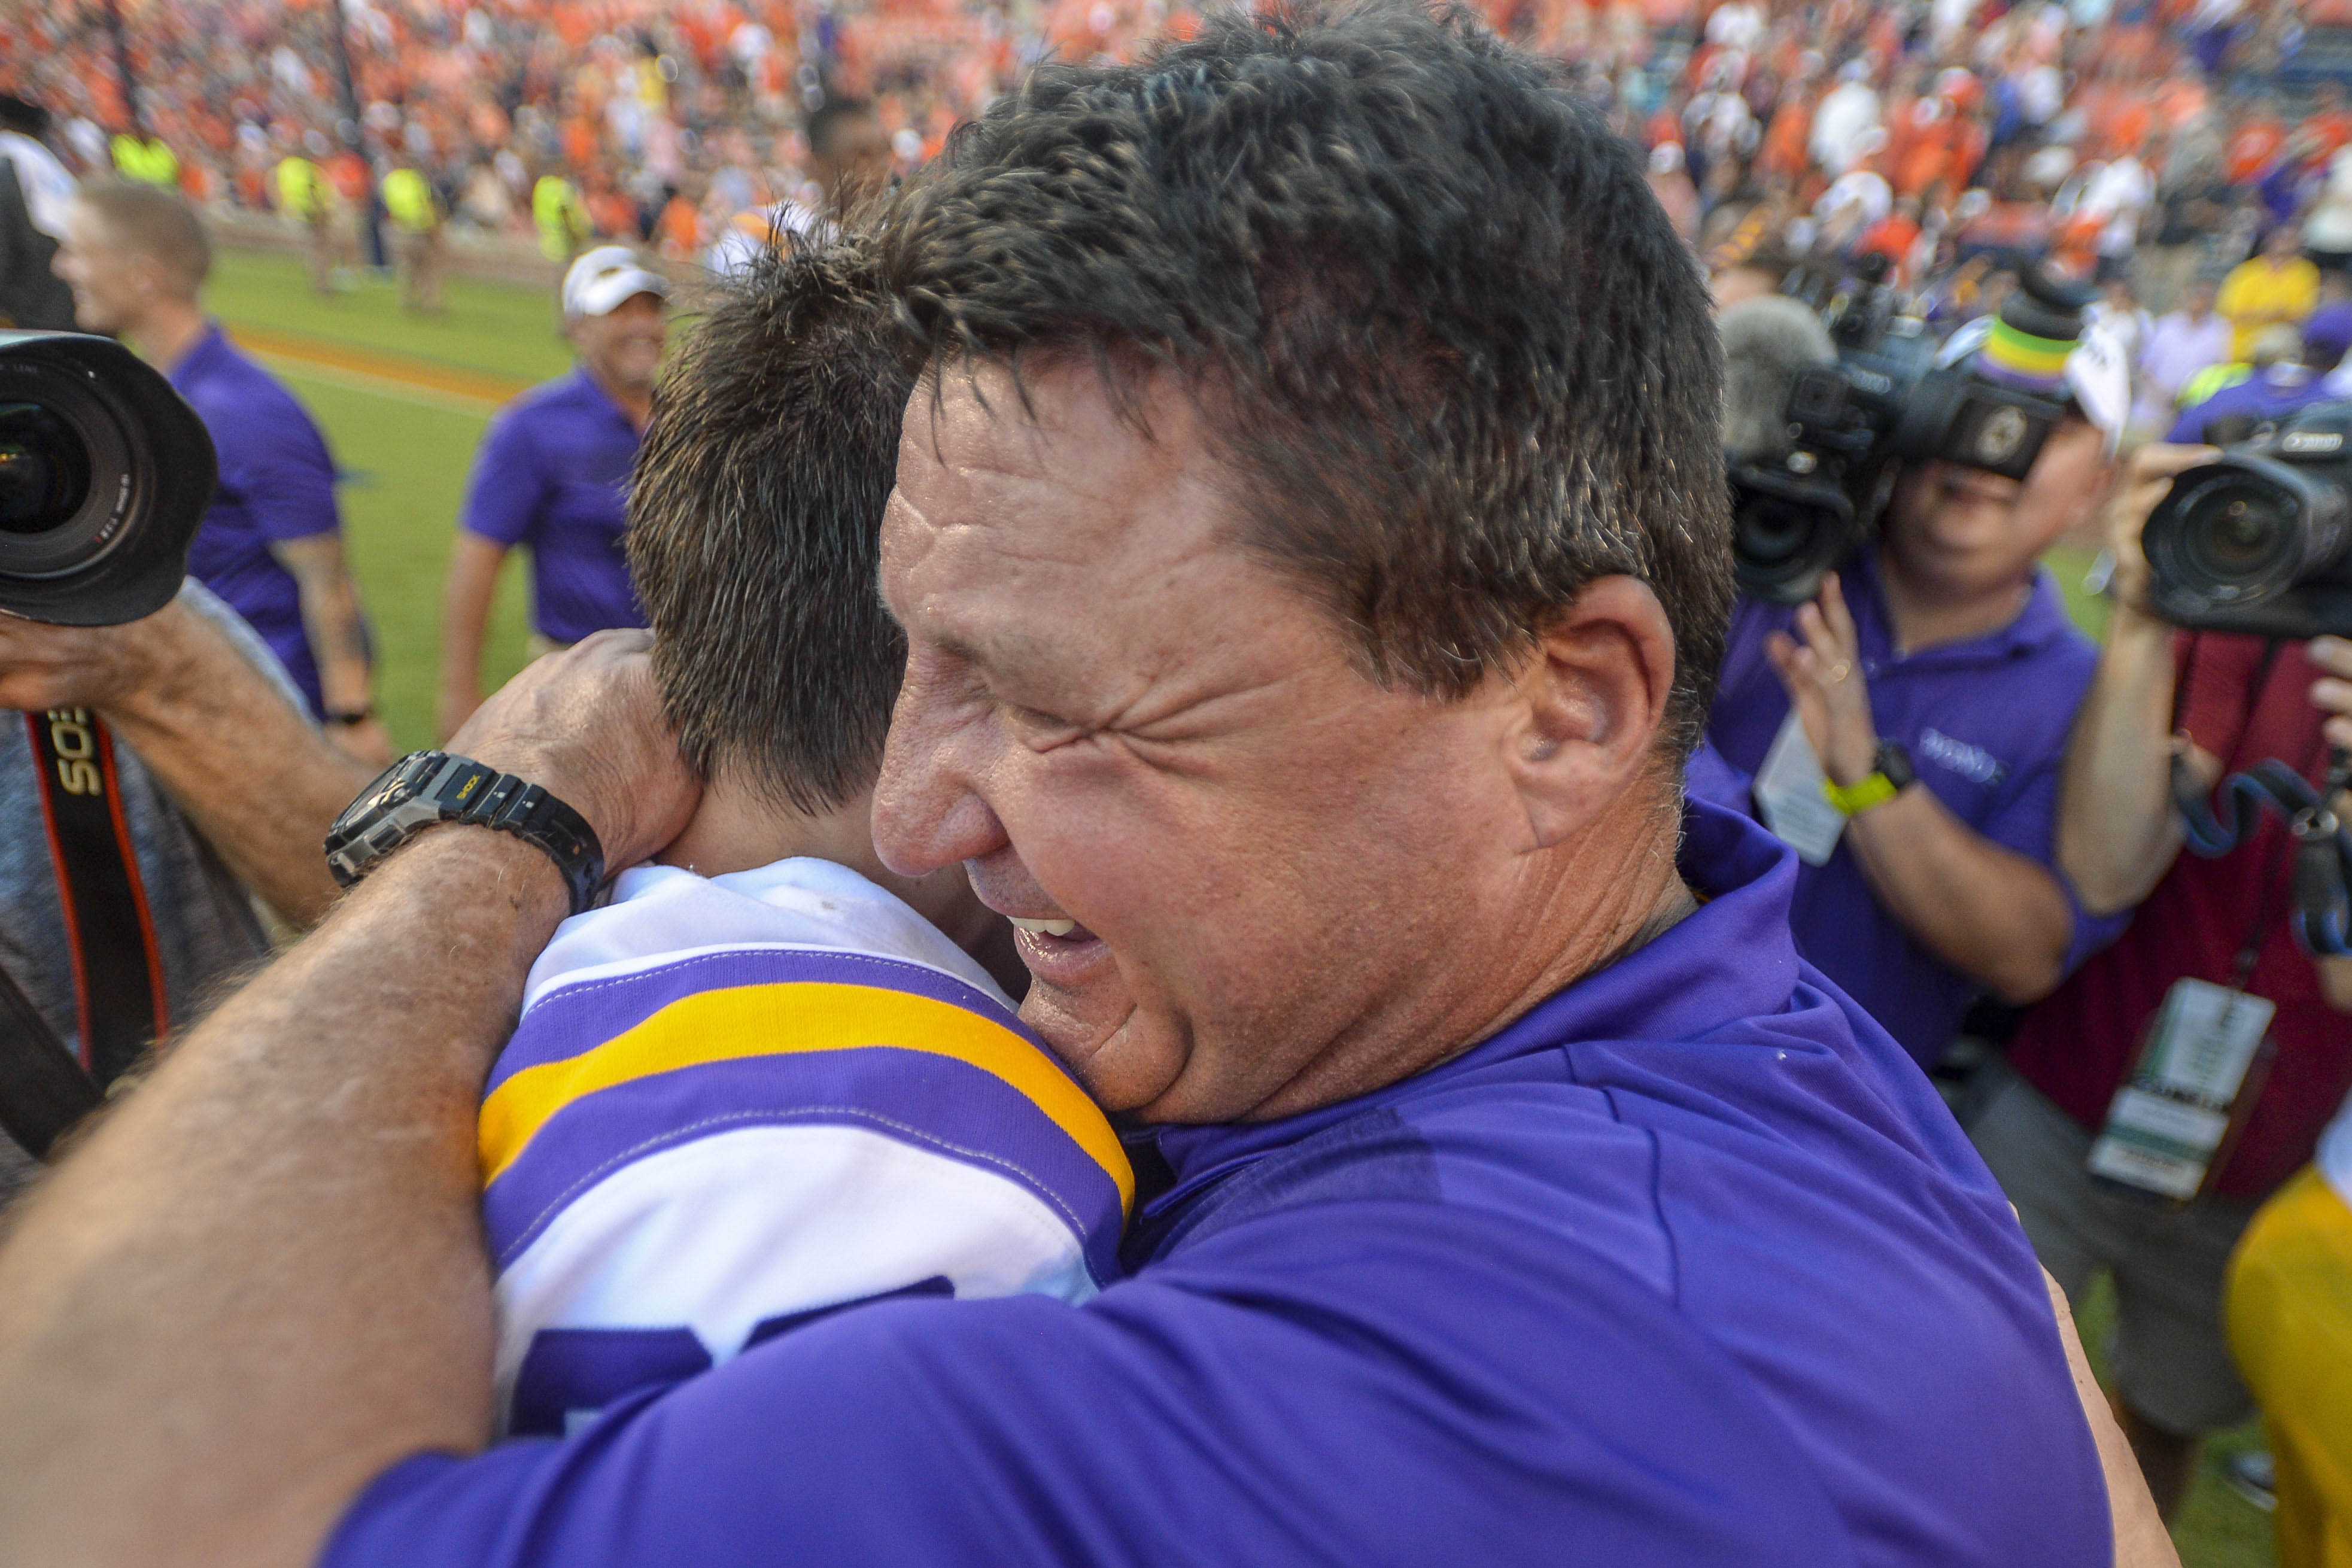 And The Valley Shook, a LSU Tigers community